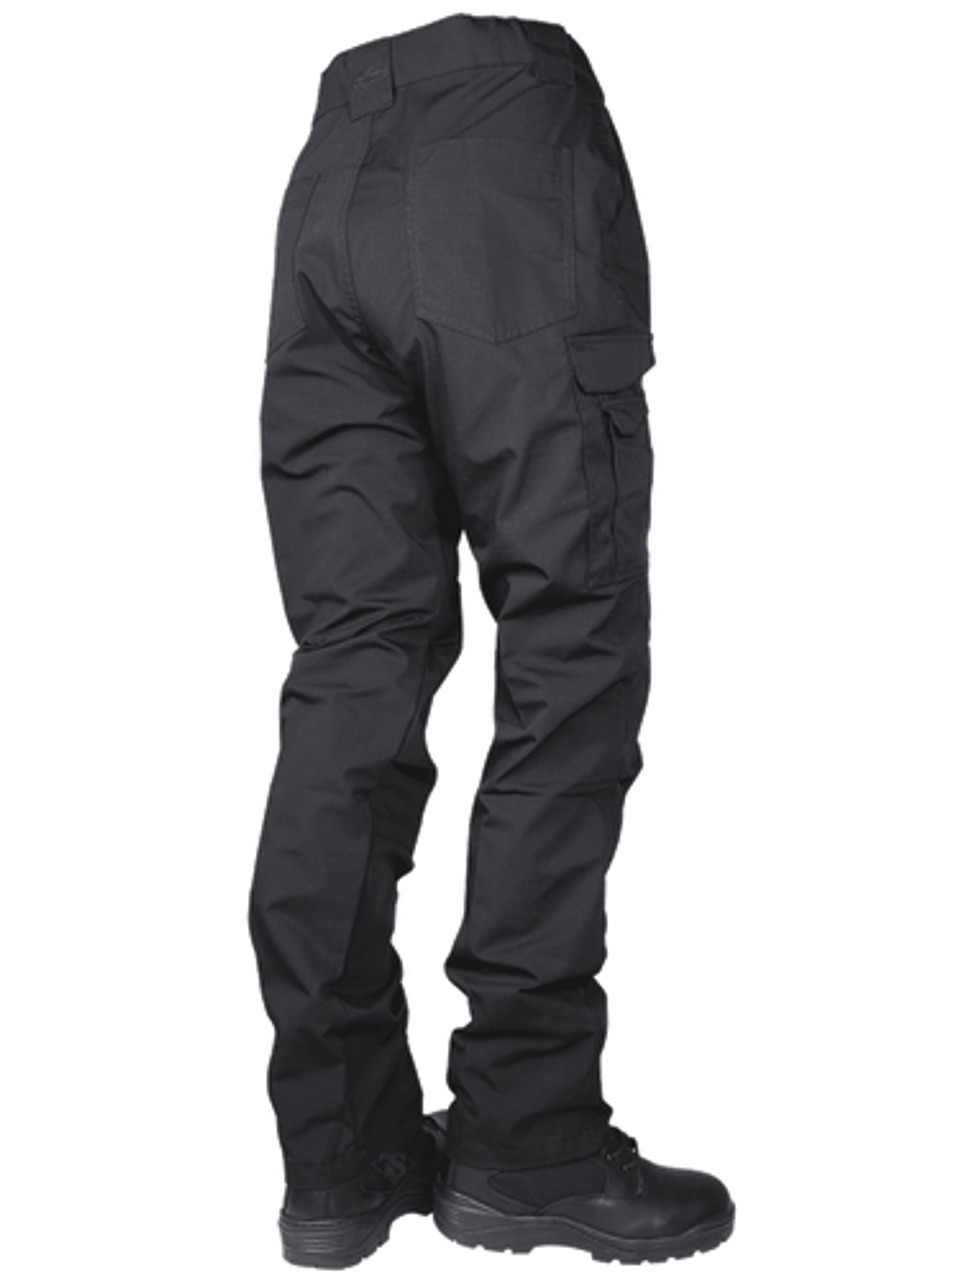 Tru-Spec 24-7 SERIES® TS-1462 Men's  Guardian Tactical Pants, Polyester/Cotton, Rip-Stop, Wide belt loops, Relaxed, Adjustable Waistband, Uniform/Casual, Two elongated cargo pockets with hook and loop closure and additional utility pockets on top,